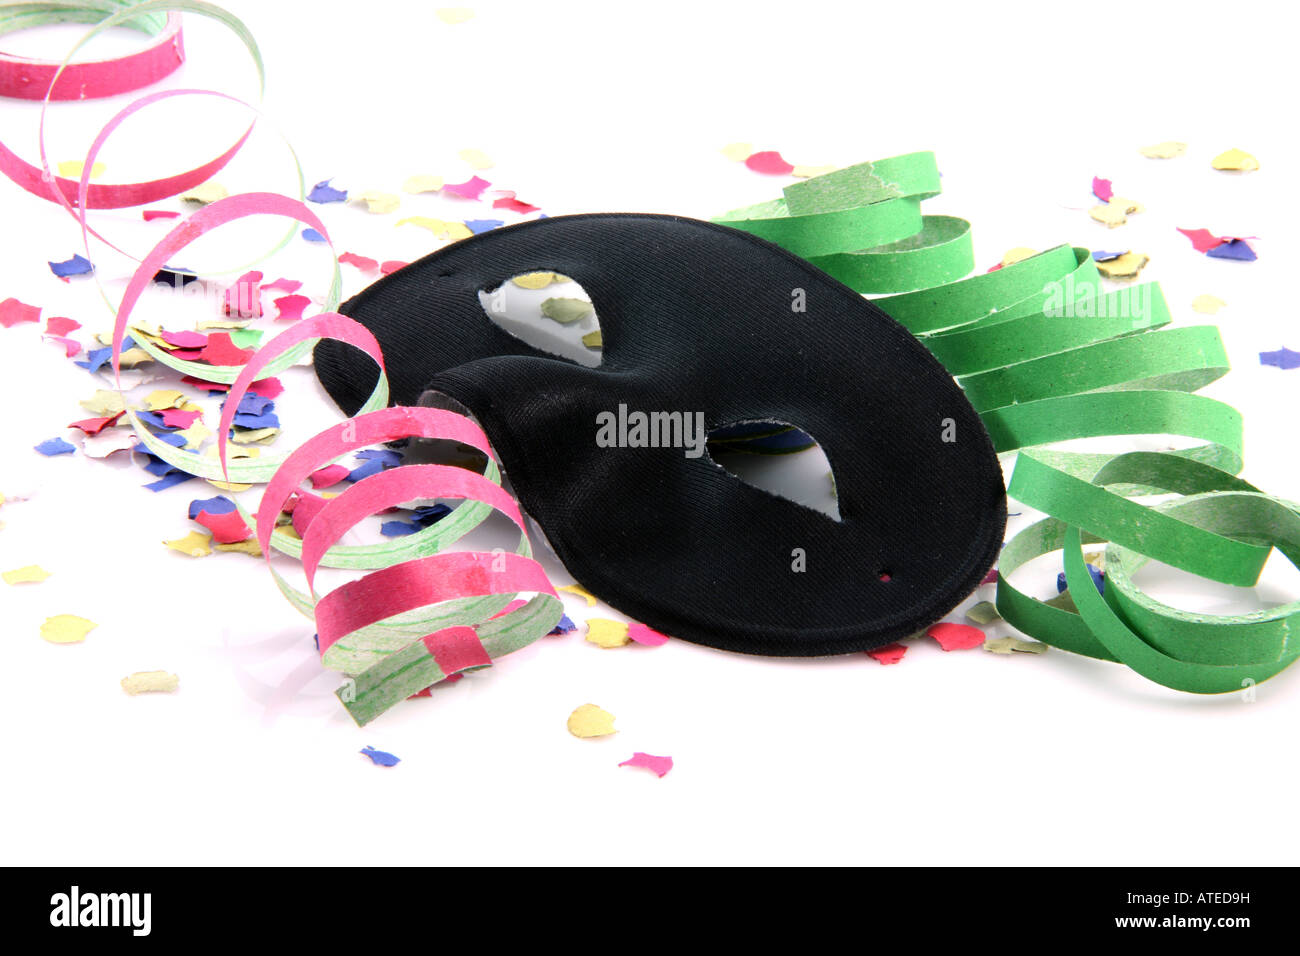 carnival concepts paper confetti streamers and black mask isolated on white background - Stock Image